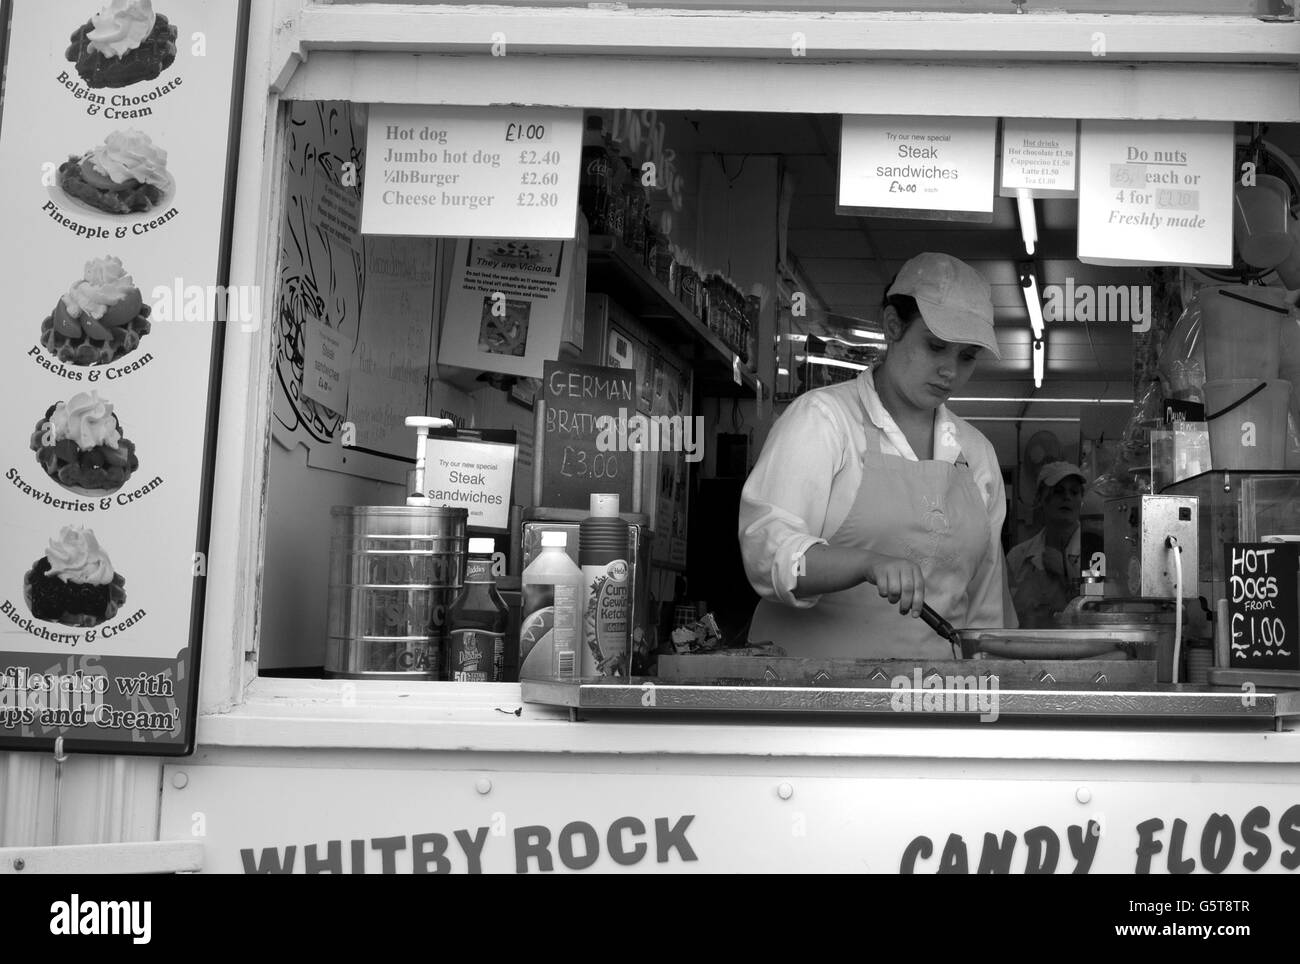 Fast food stall, Whitby, North Yorkshire - Stock Image